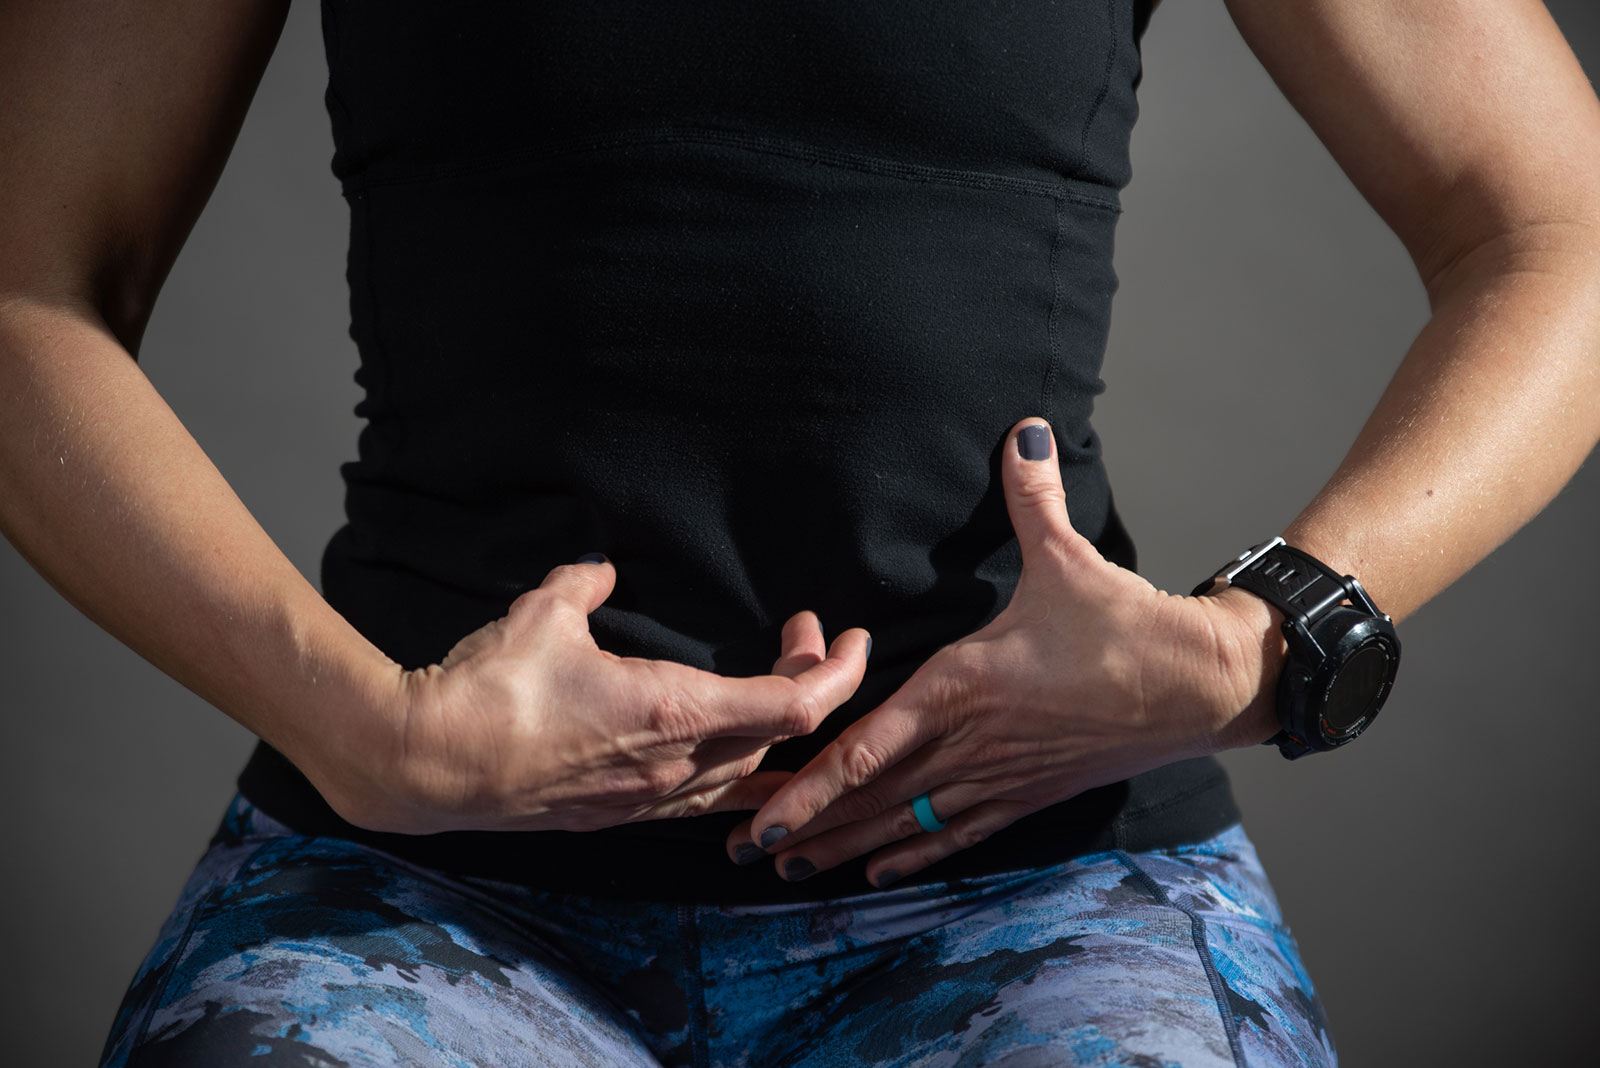 pregnancy changes, asheville physical therapy, postpartum pain, bodily changes from giving birth